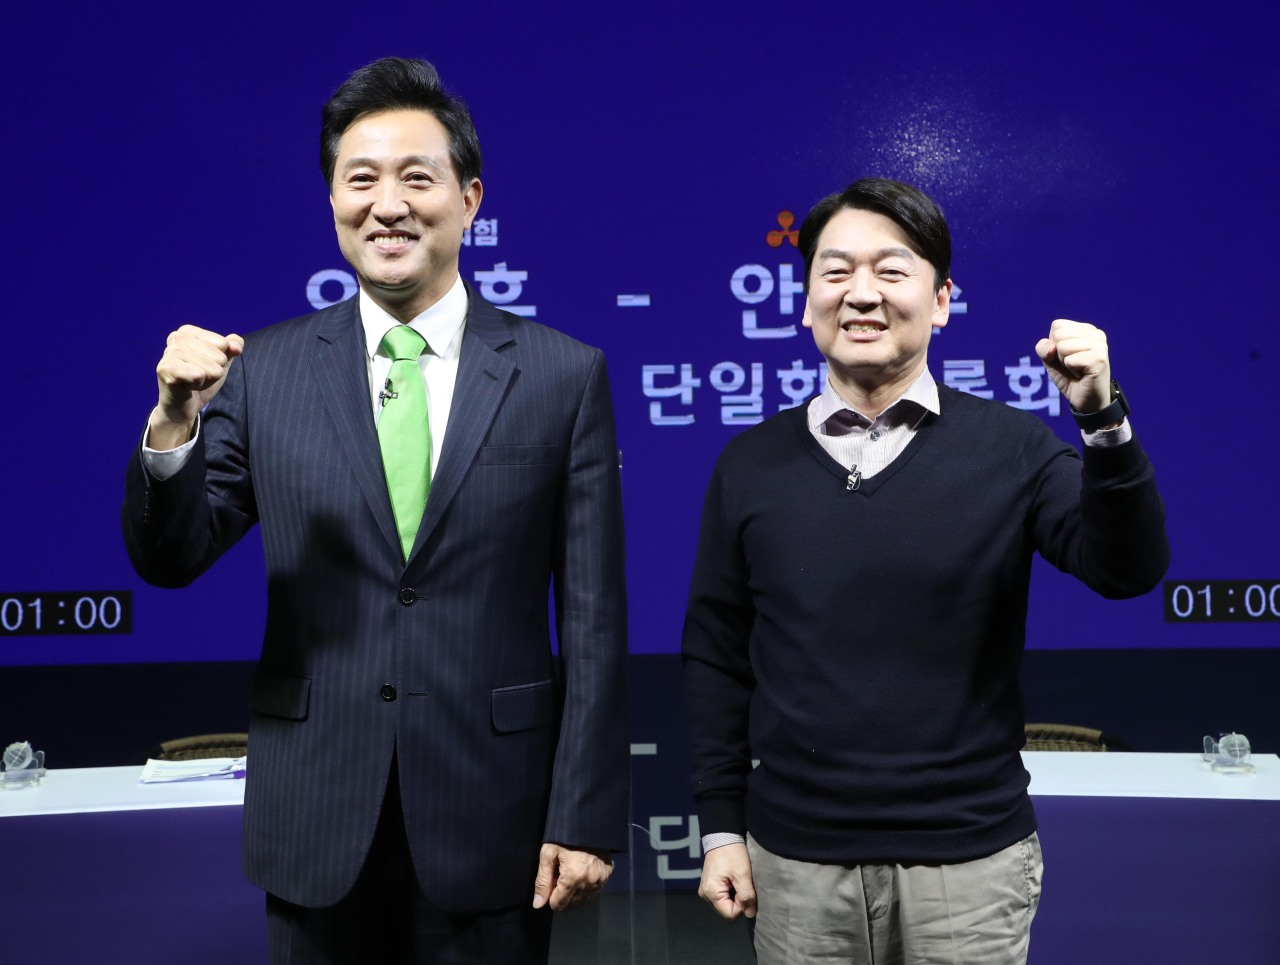 Former Seoul Mayor Oh Se-hoon (L) of the main opposition People Power Party and Ahn Cheol-soo, head of the minor opposition People's Party -- candidates for the April 7 Seoul mayoral by-election -- pose for a photo before a TV debate in Seoul last Tuesday, as part of procedures to unify their candidacies. (Yonhap)